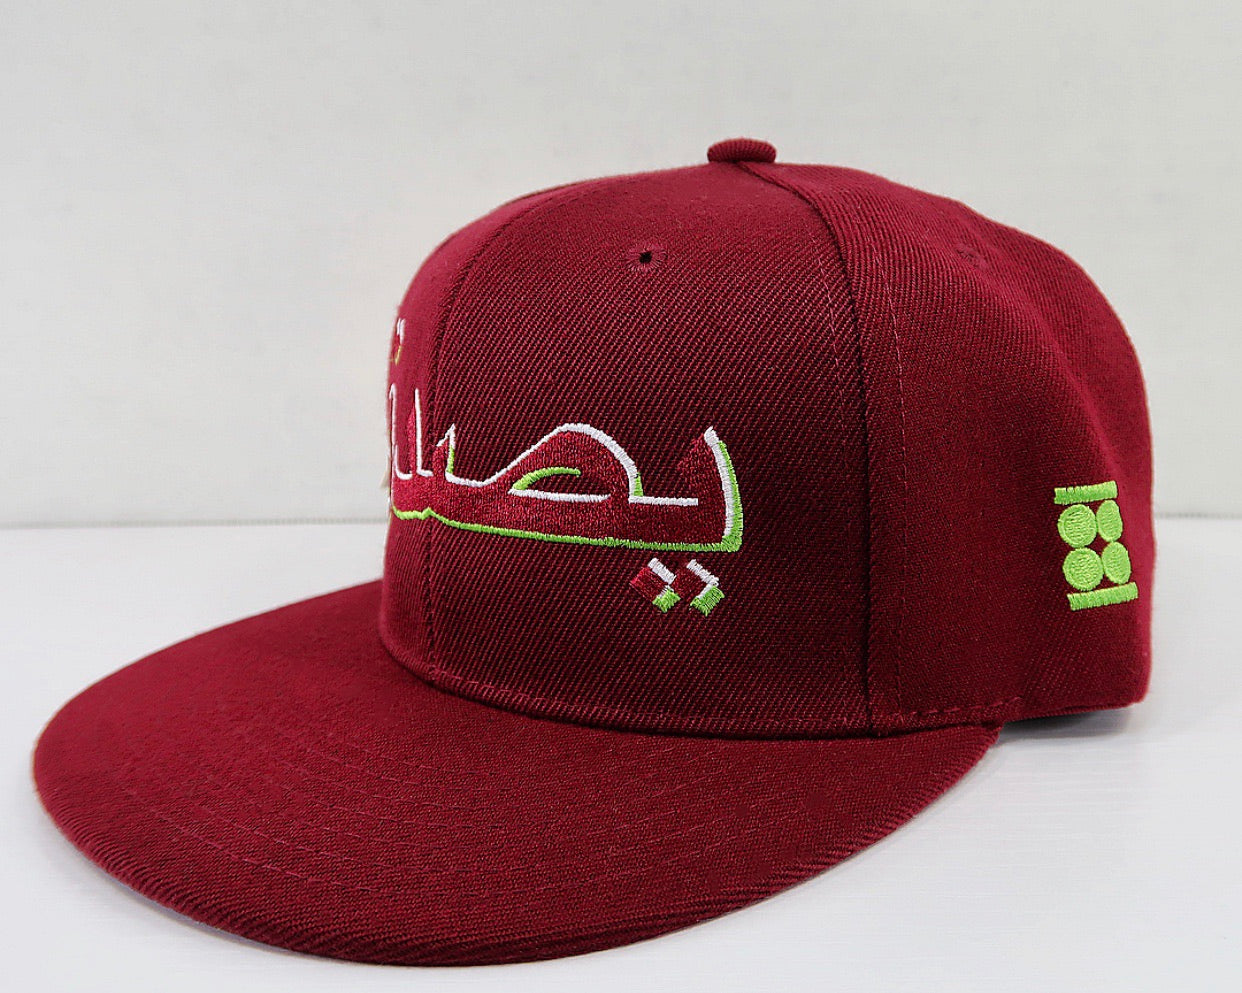 """Believe"" Graphic SnapBack Hat (BURGUNDY, WHITE & NEON GREEN)"